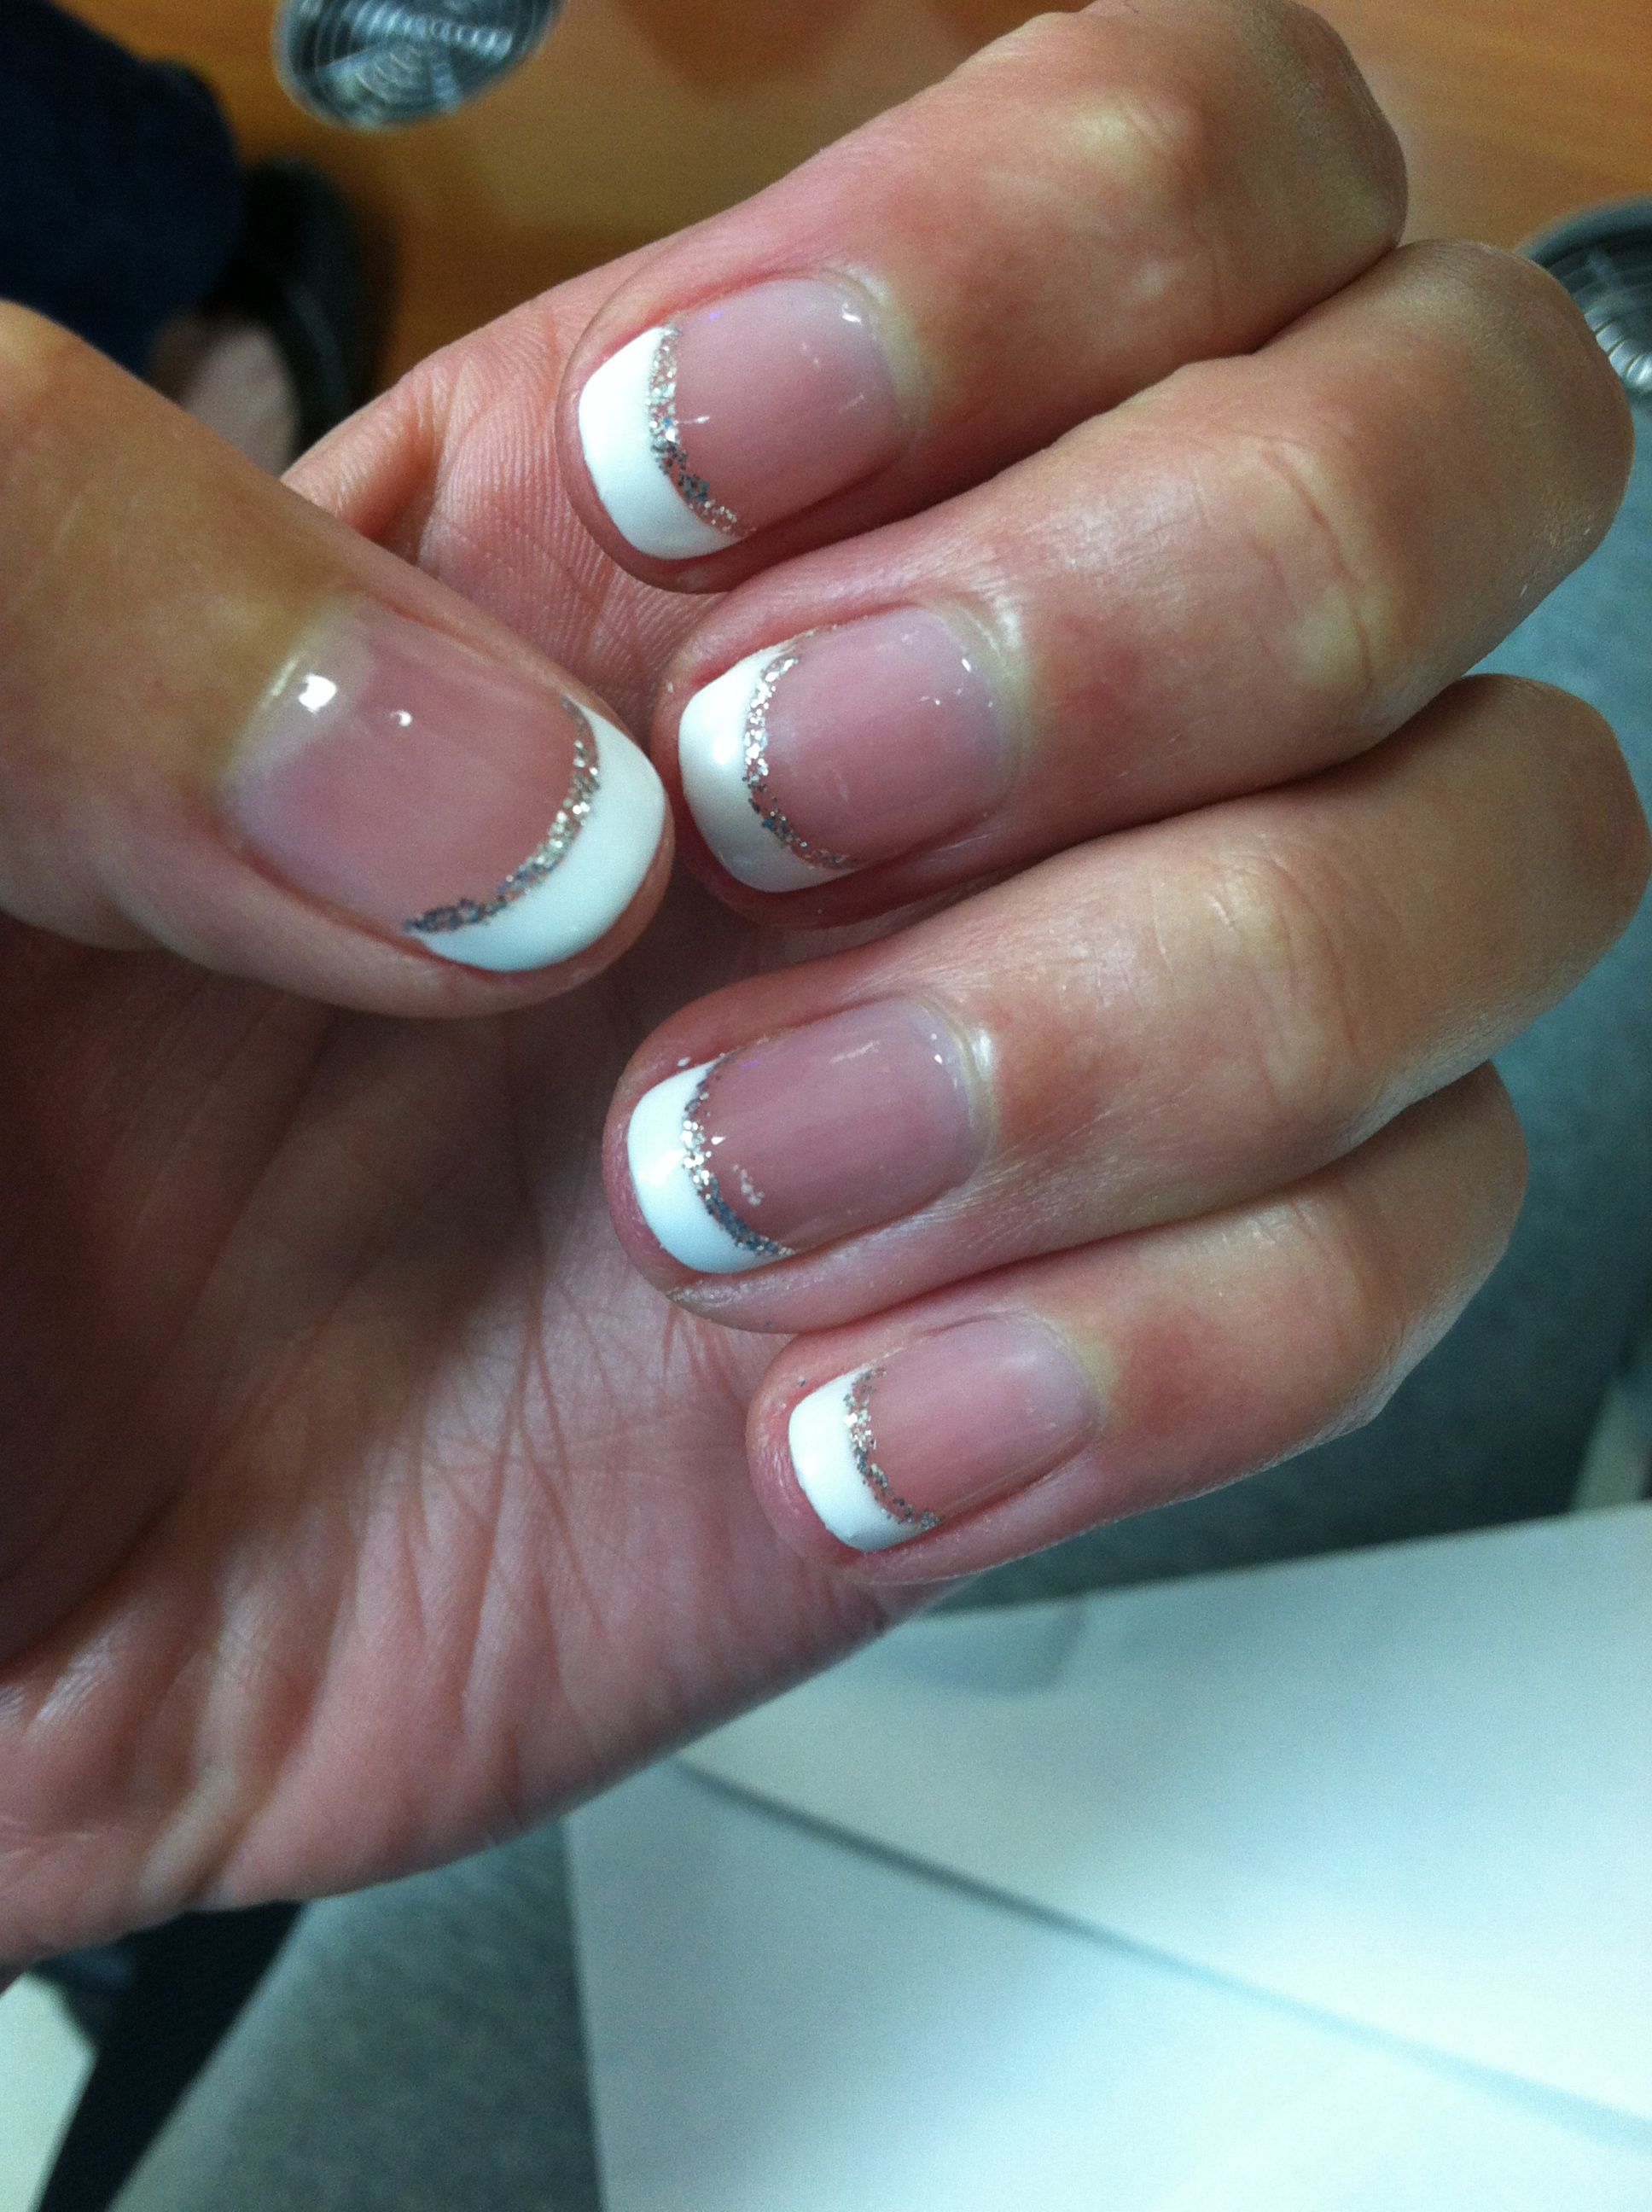 French gel manicure- short | Nails | Pinterest | Gel manicure ...